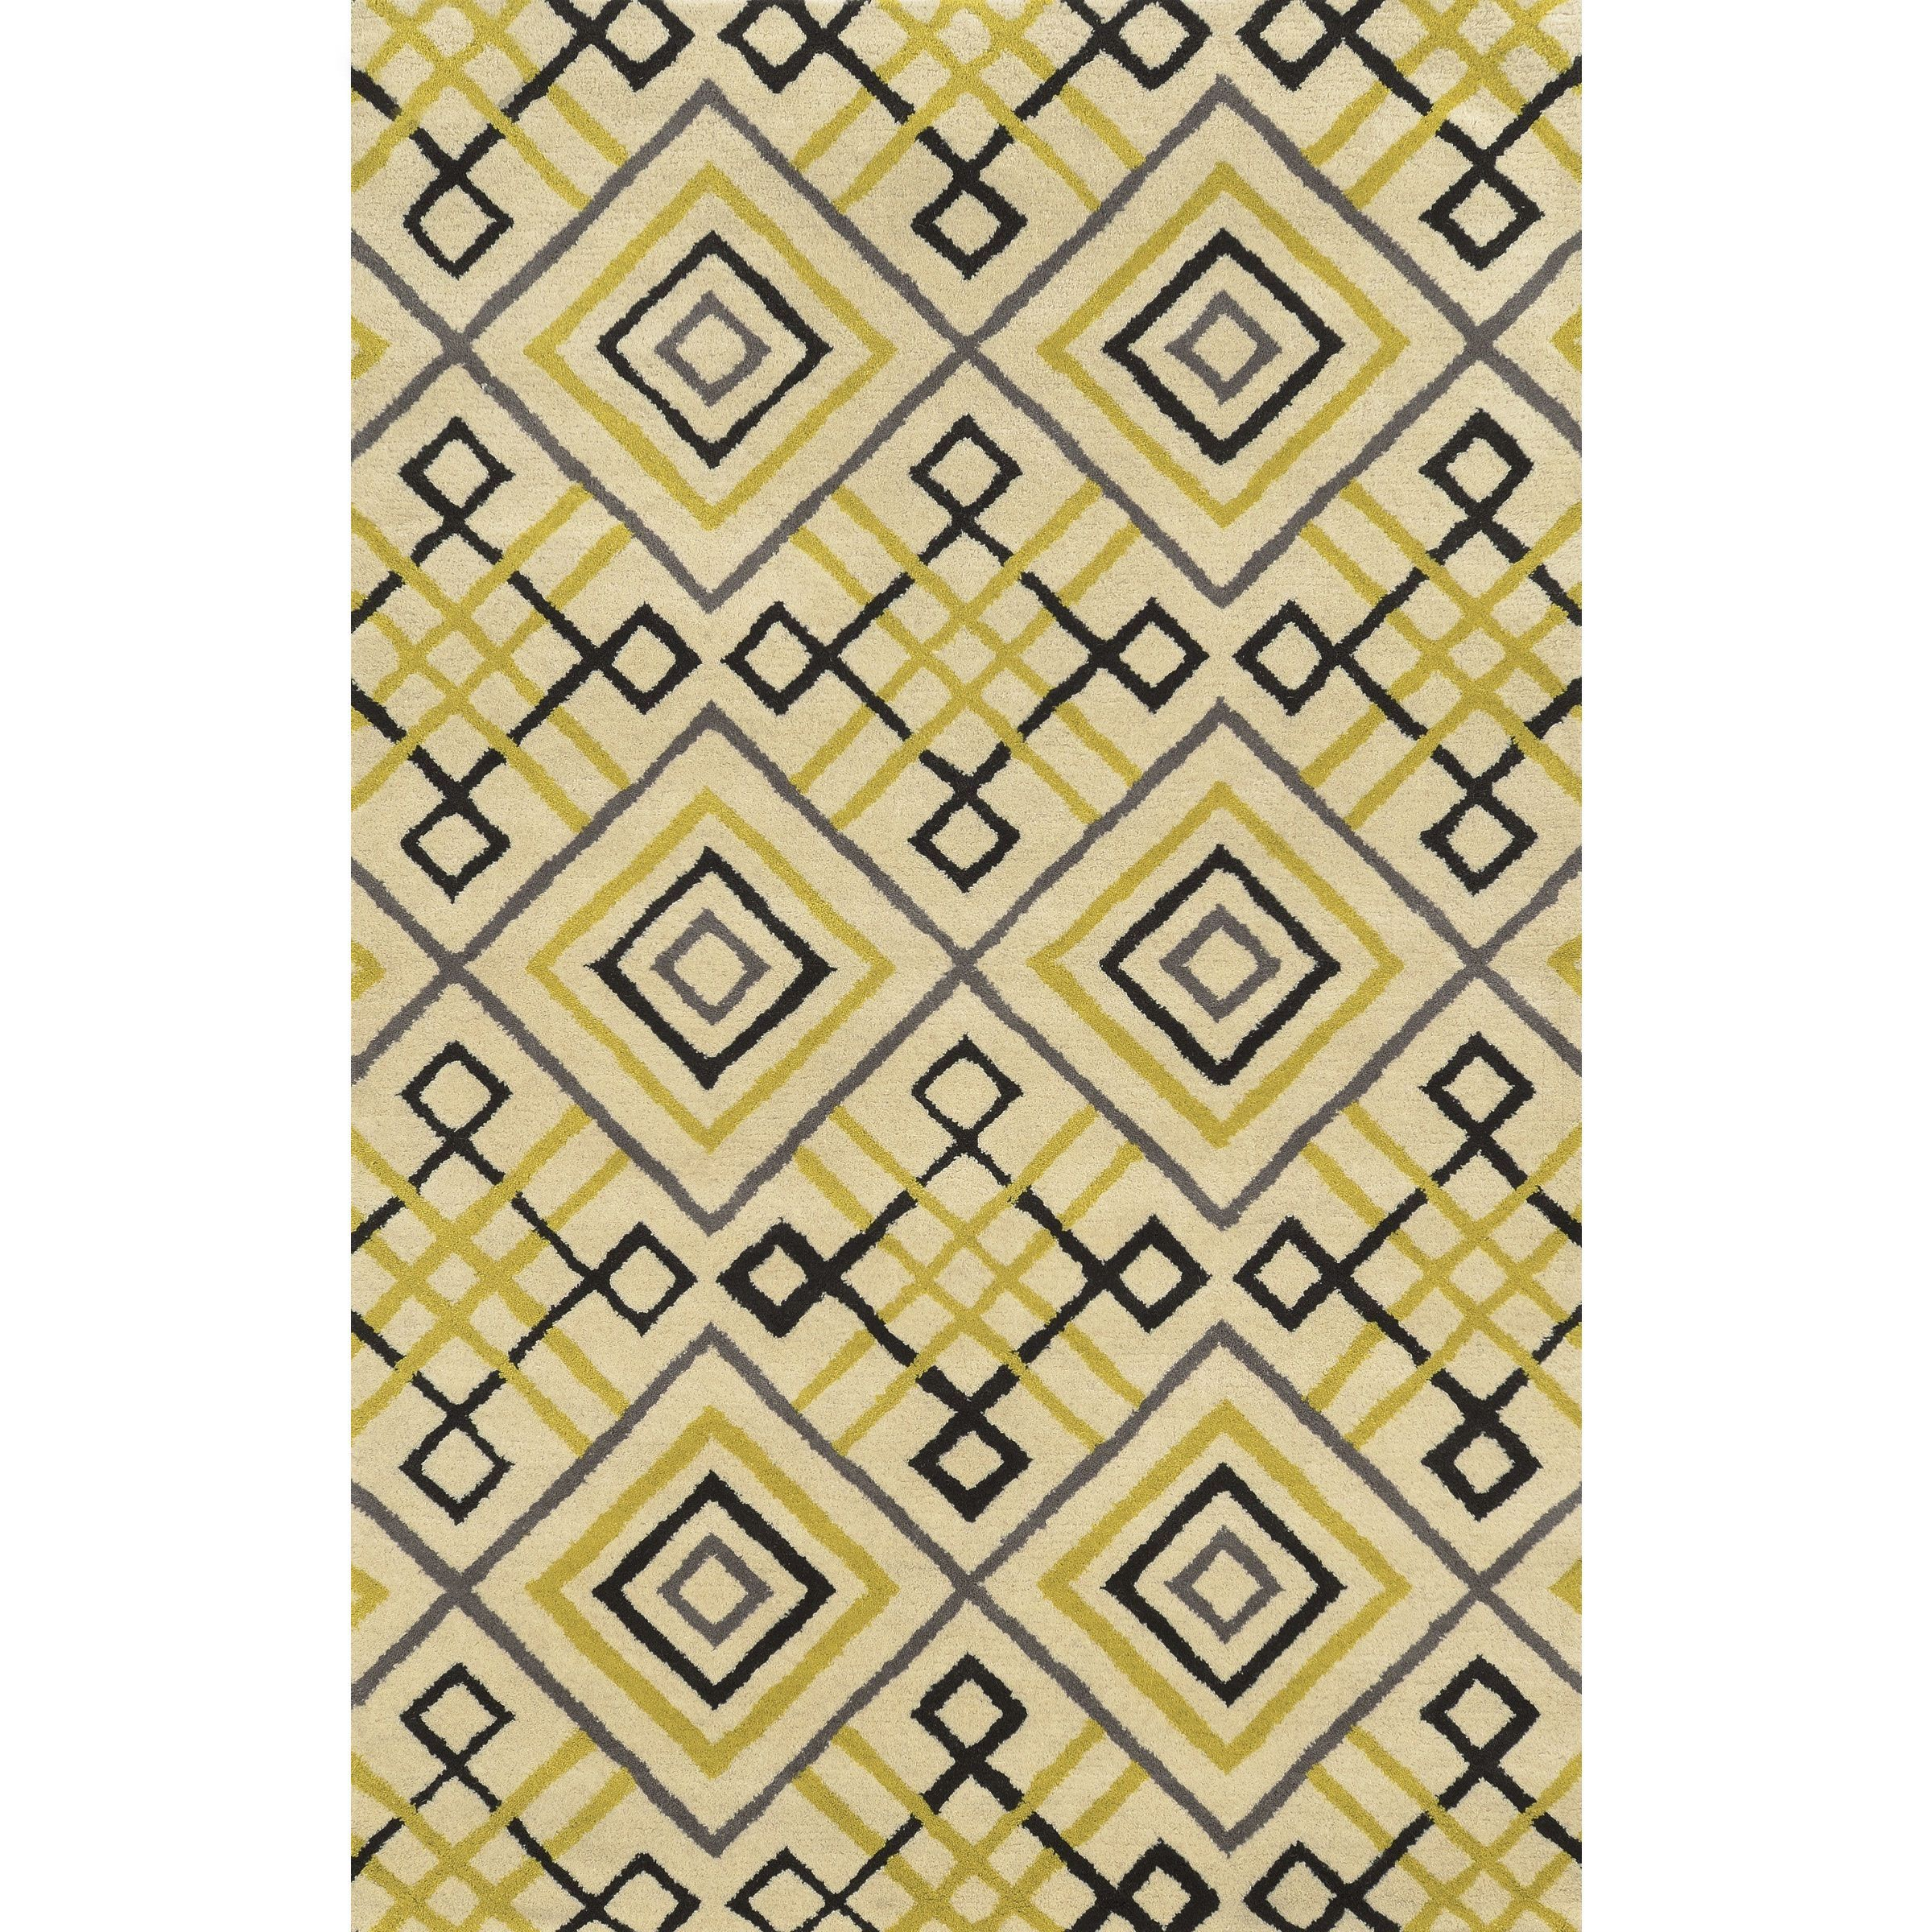 Rizzy Home Beige/ Gold/ Black/ Charcoal Bradberry Downs Collection 100-percent Wool Accent Rug (5' x 8') (Ivory), Size 5' x 8'